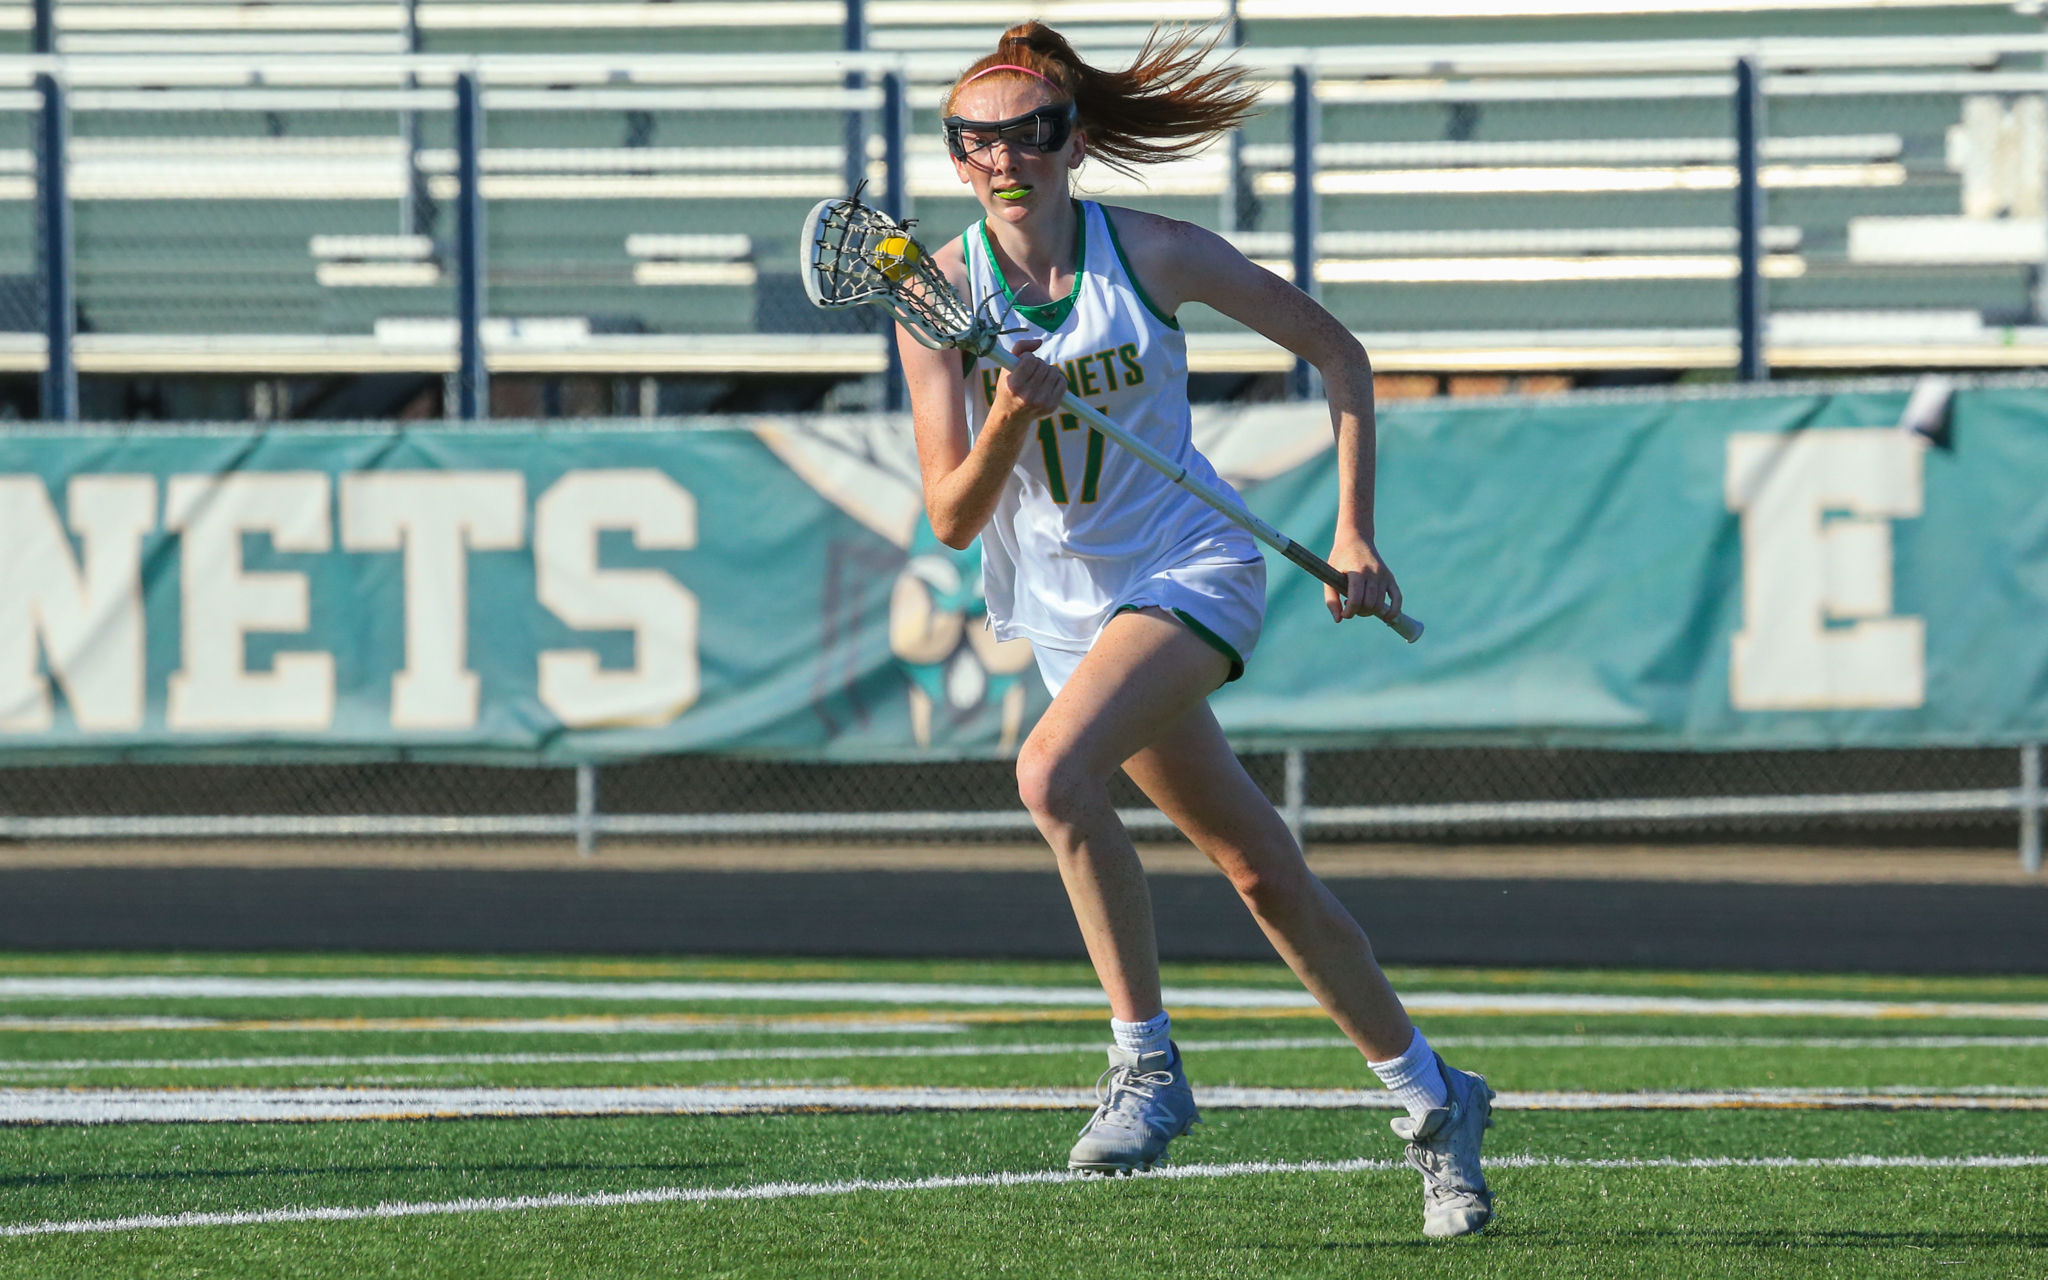 Edina's Cordelia Flemming (17) scored twice for the Hornets in her team's 11-6 loss to Prior Lake in the Section 6 championship game at Kuhlman Field in Edina. Photo by Jeff Lawler, SportsEngine